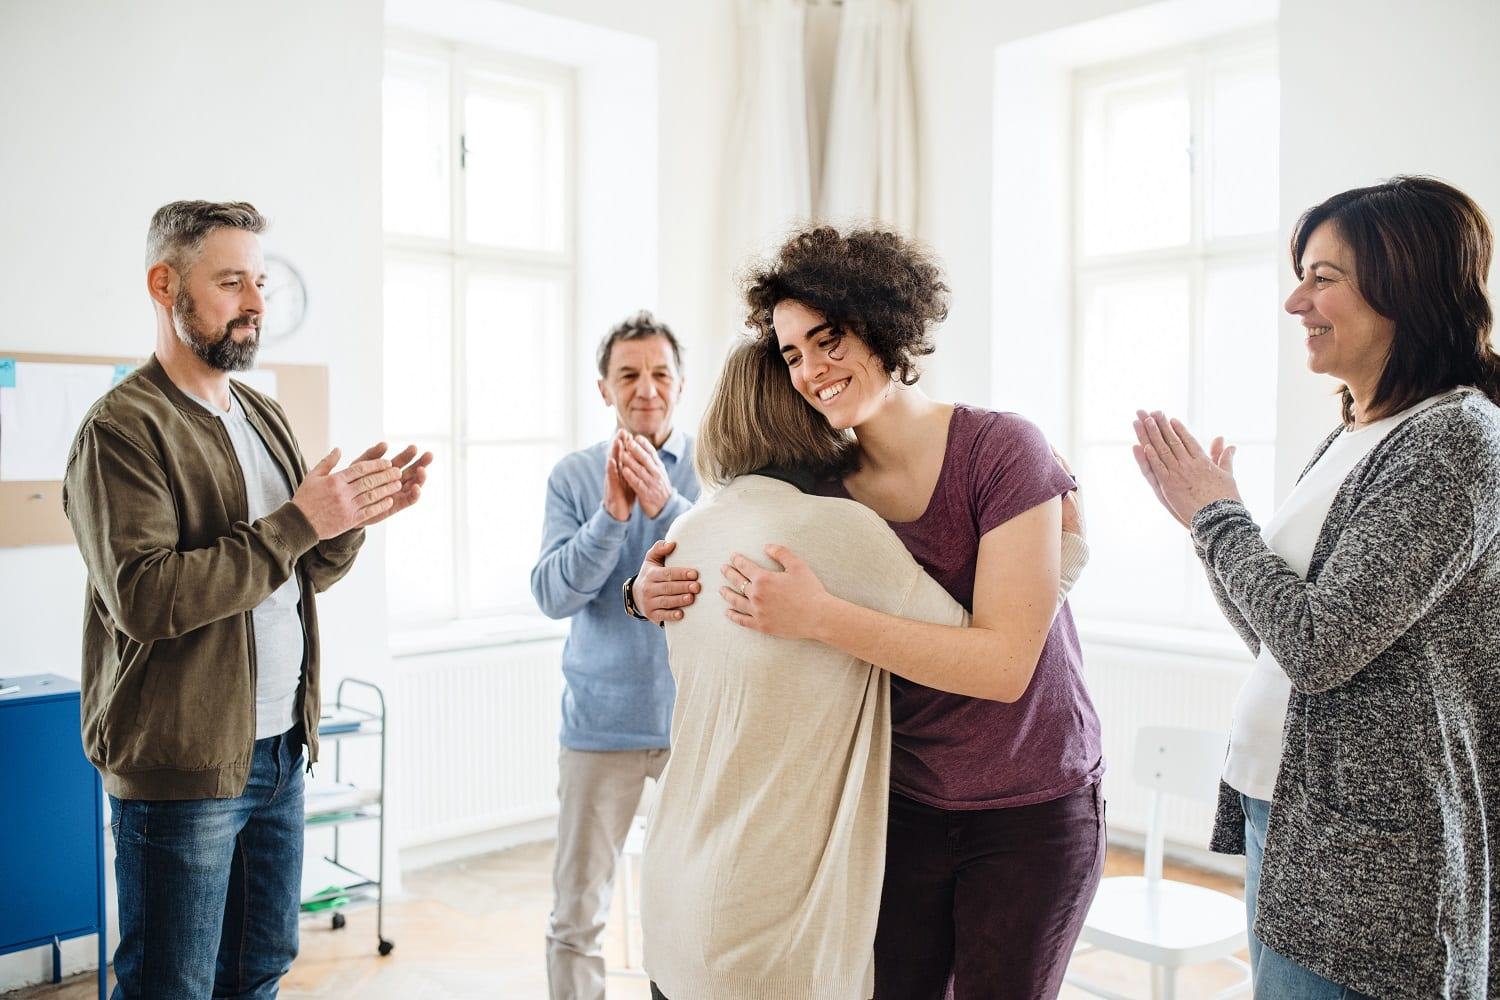 Group of men and women during group therapy